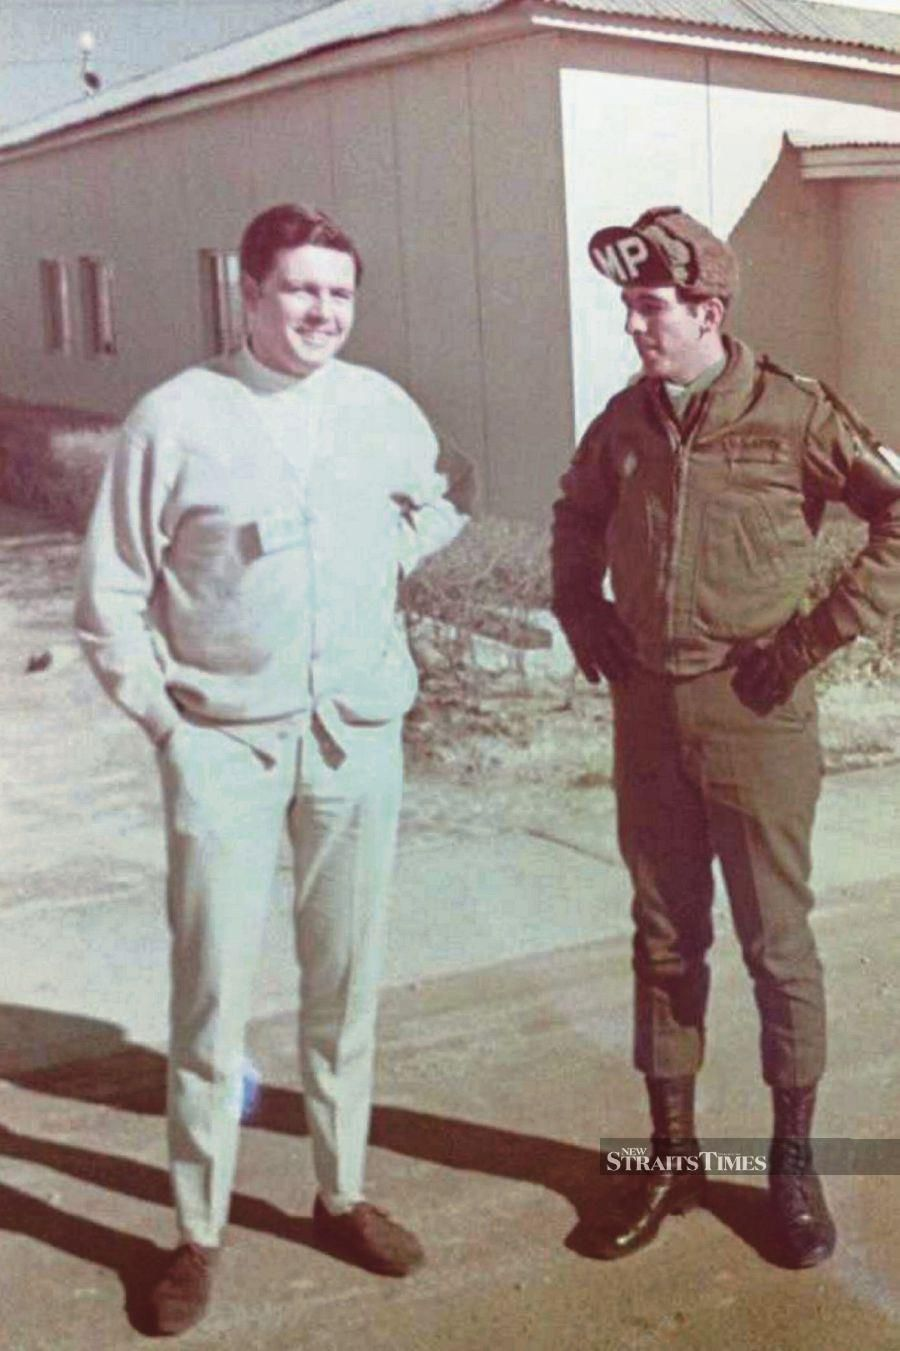 Christopher James Syer (left) and his friend during a visit to the Korean demilitarised zone in Panmunjom, North Korea, in November 1970.